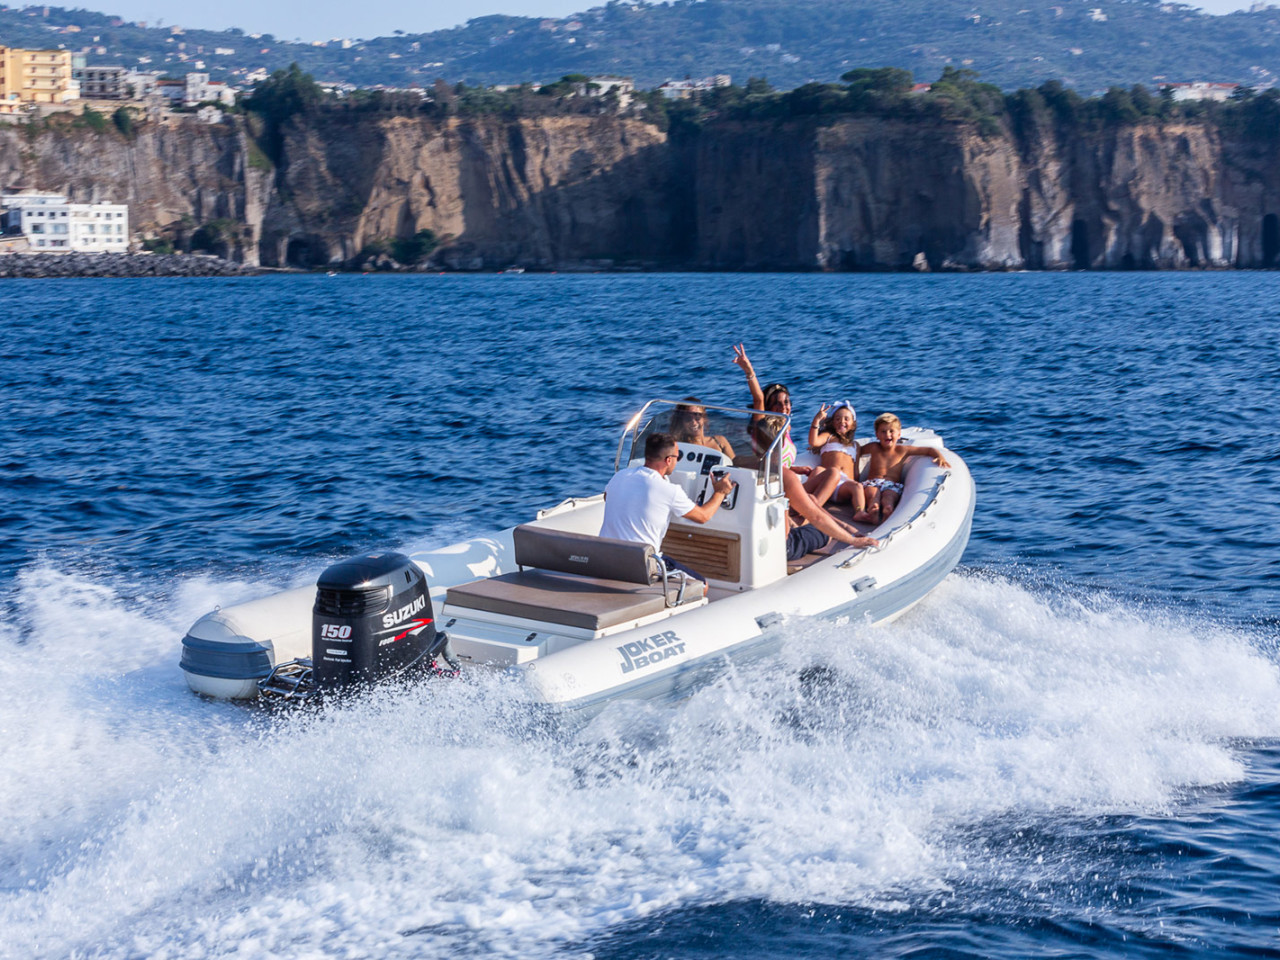 JOKER BOAT 5.60 | Mar Amar boat tour Sorrento